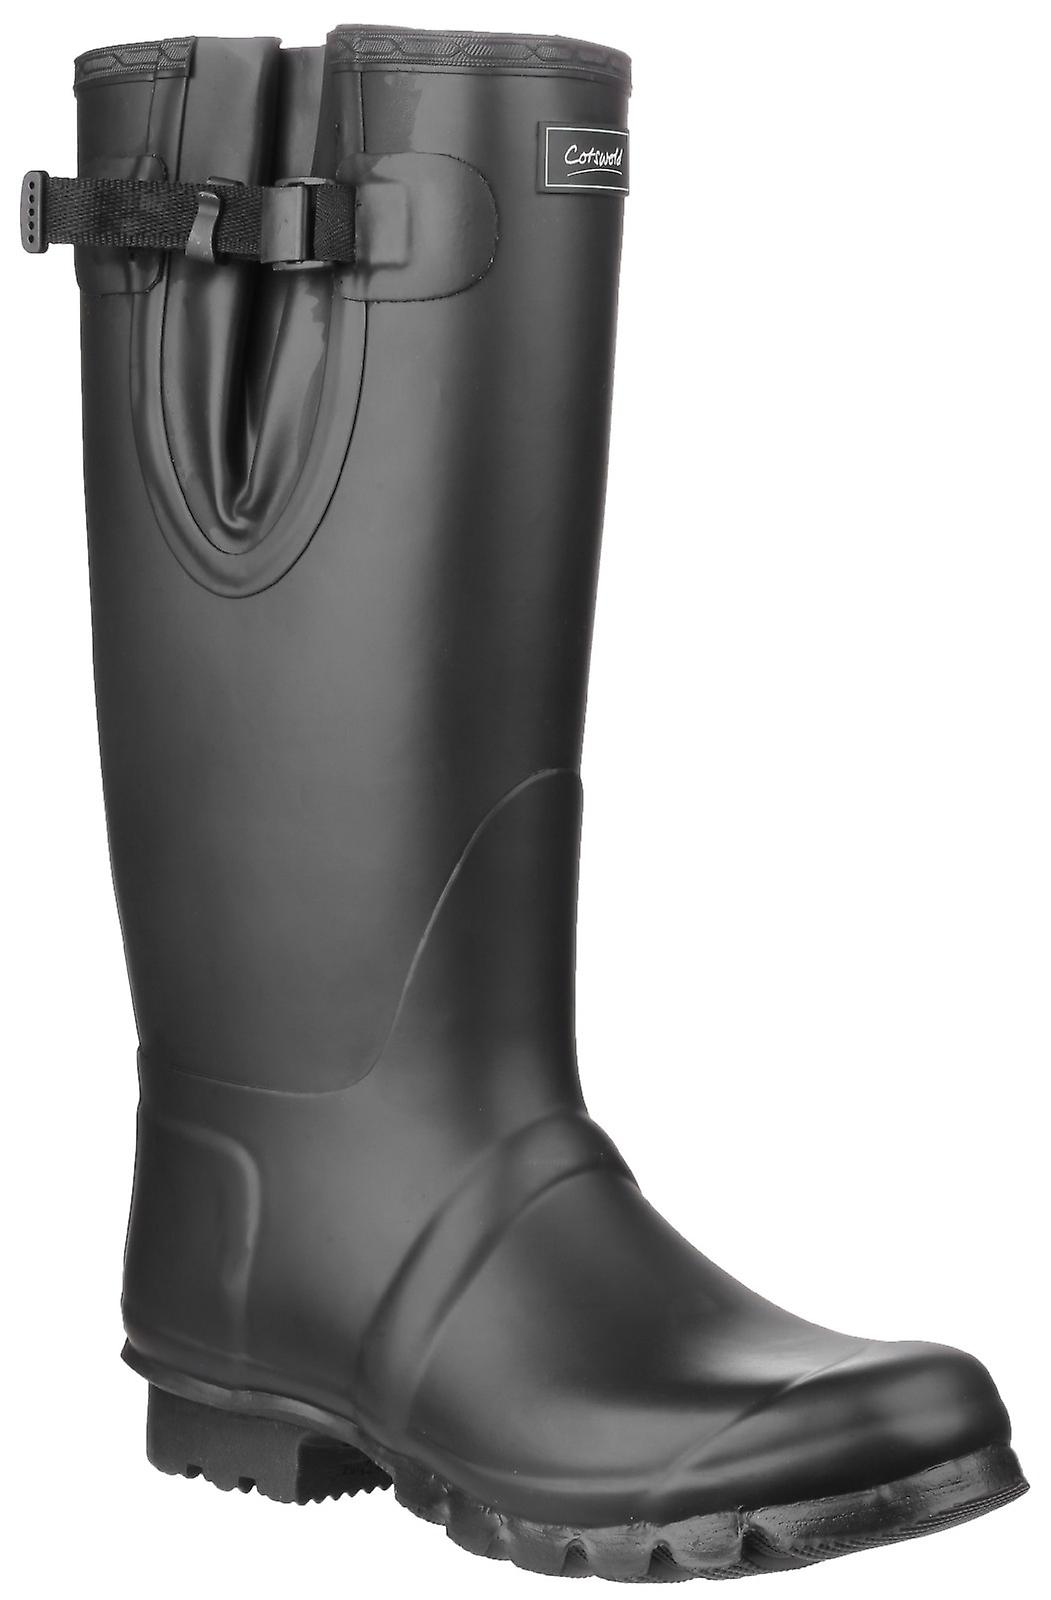 Centek FS331 S3 black water resistant SRC safety boot with midsole 5-12